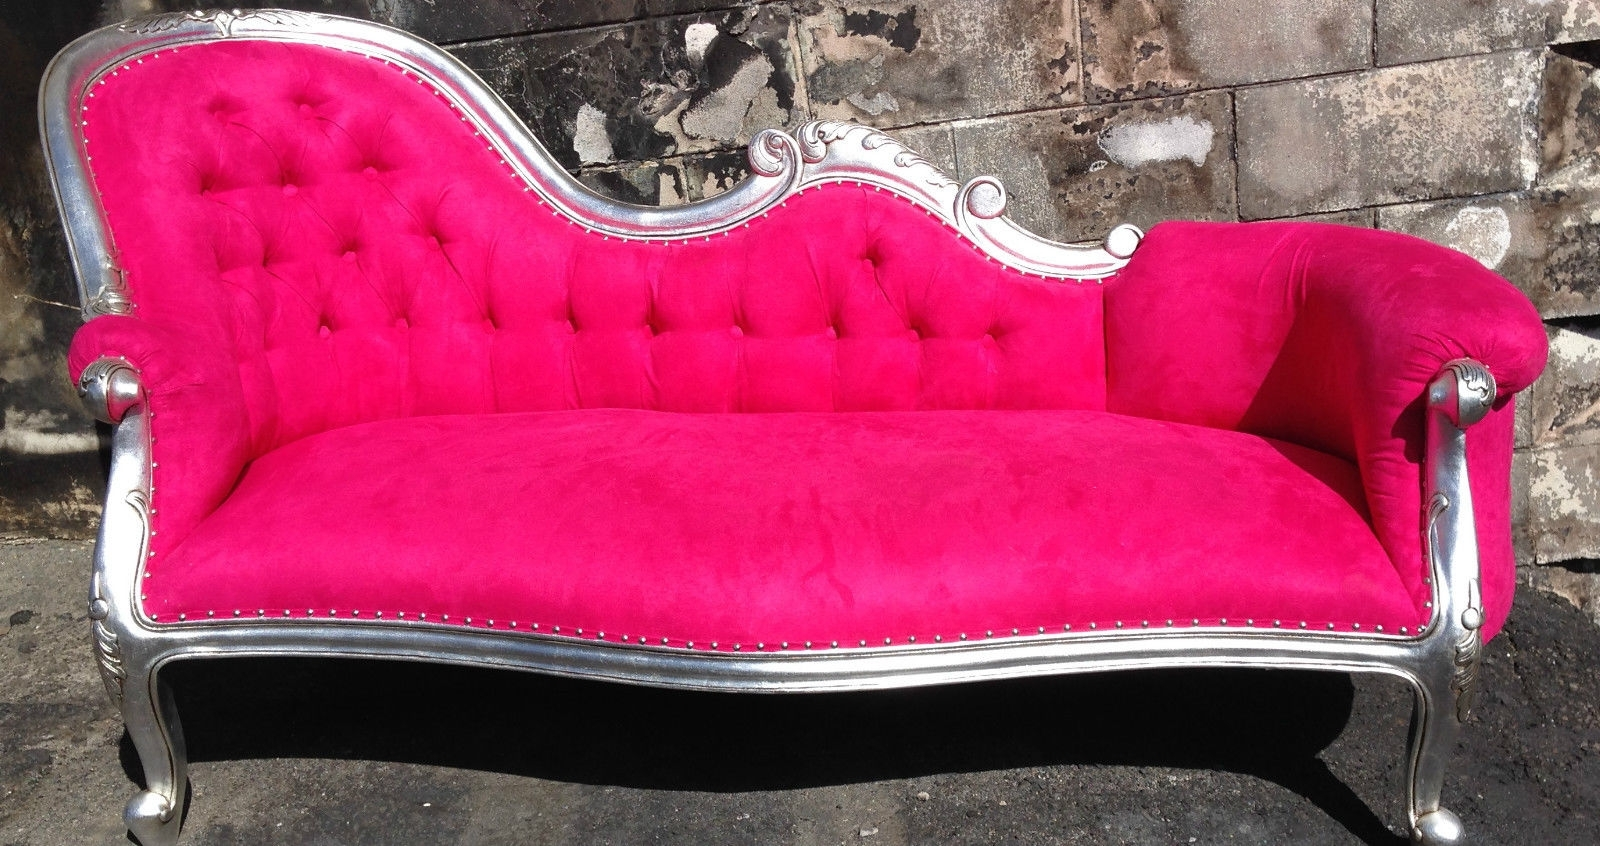 Pink Chaise Lounges Intended For Best And Newest Rockstar Pink Chaise Lounge Chesterfield Sofa Queen Loveseat Couch (View 7 of 15)